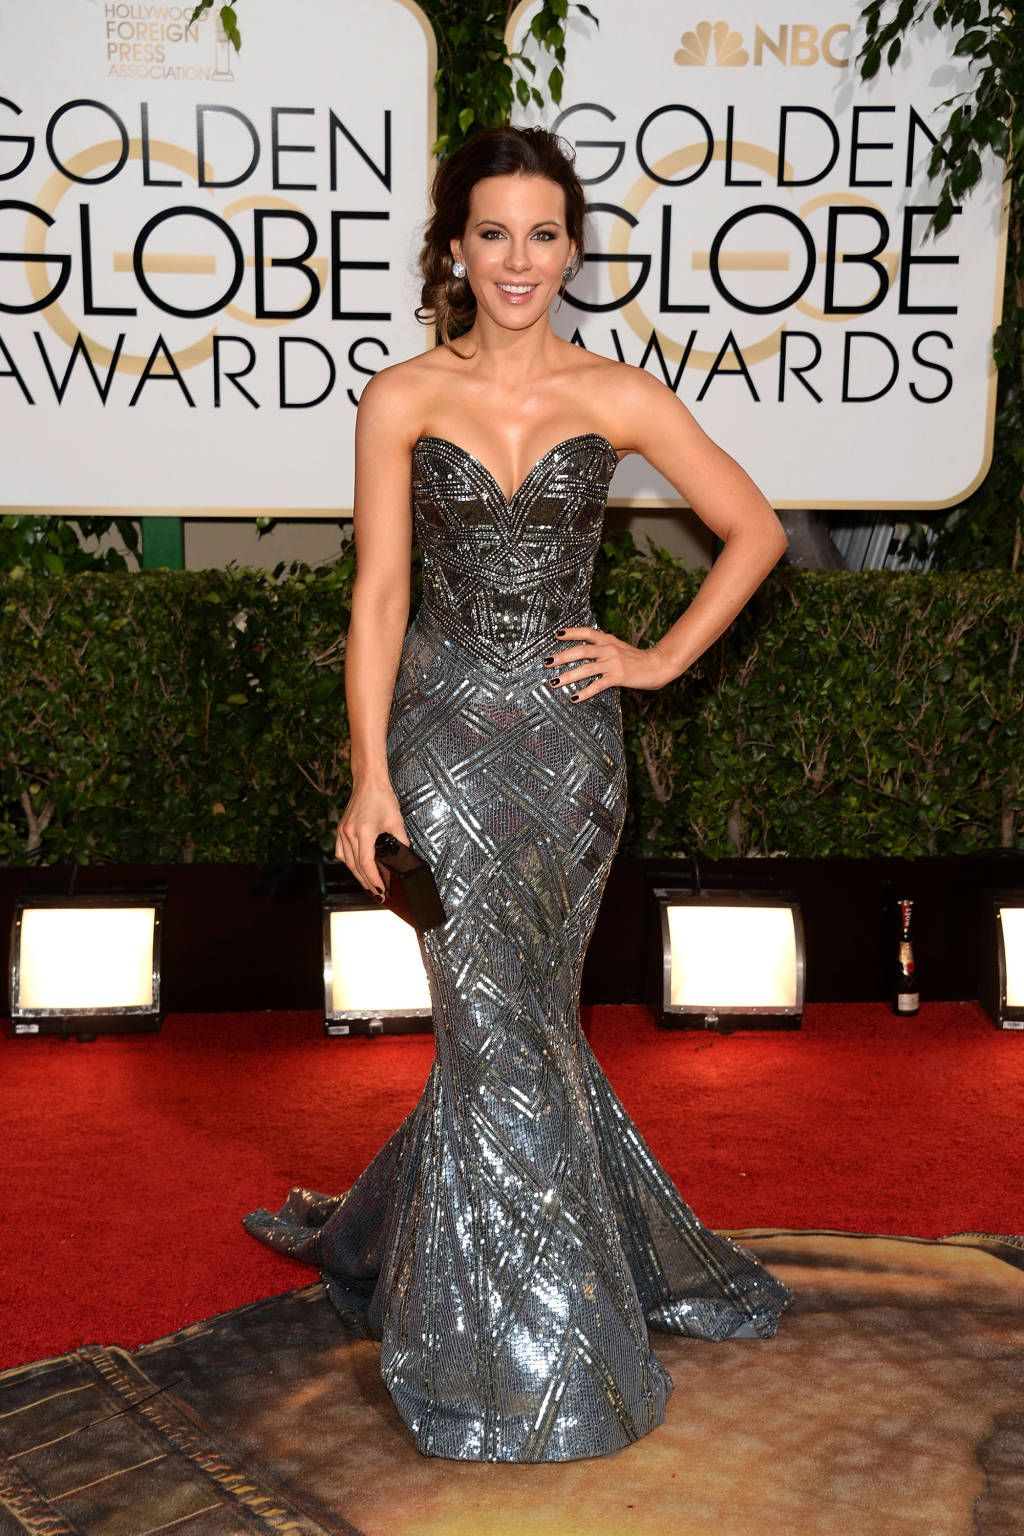 Golden Globes Red Carpet 2014 - Kate Beckinsale